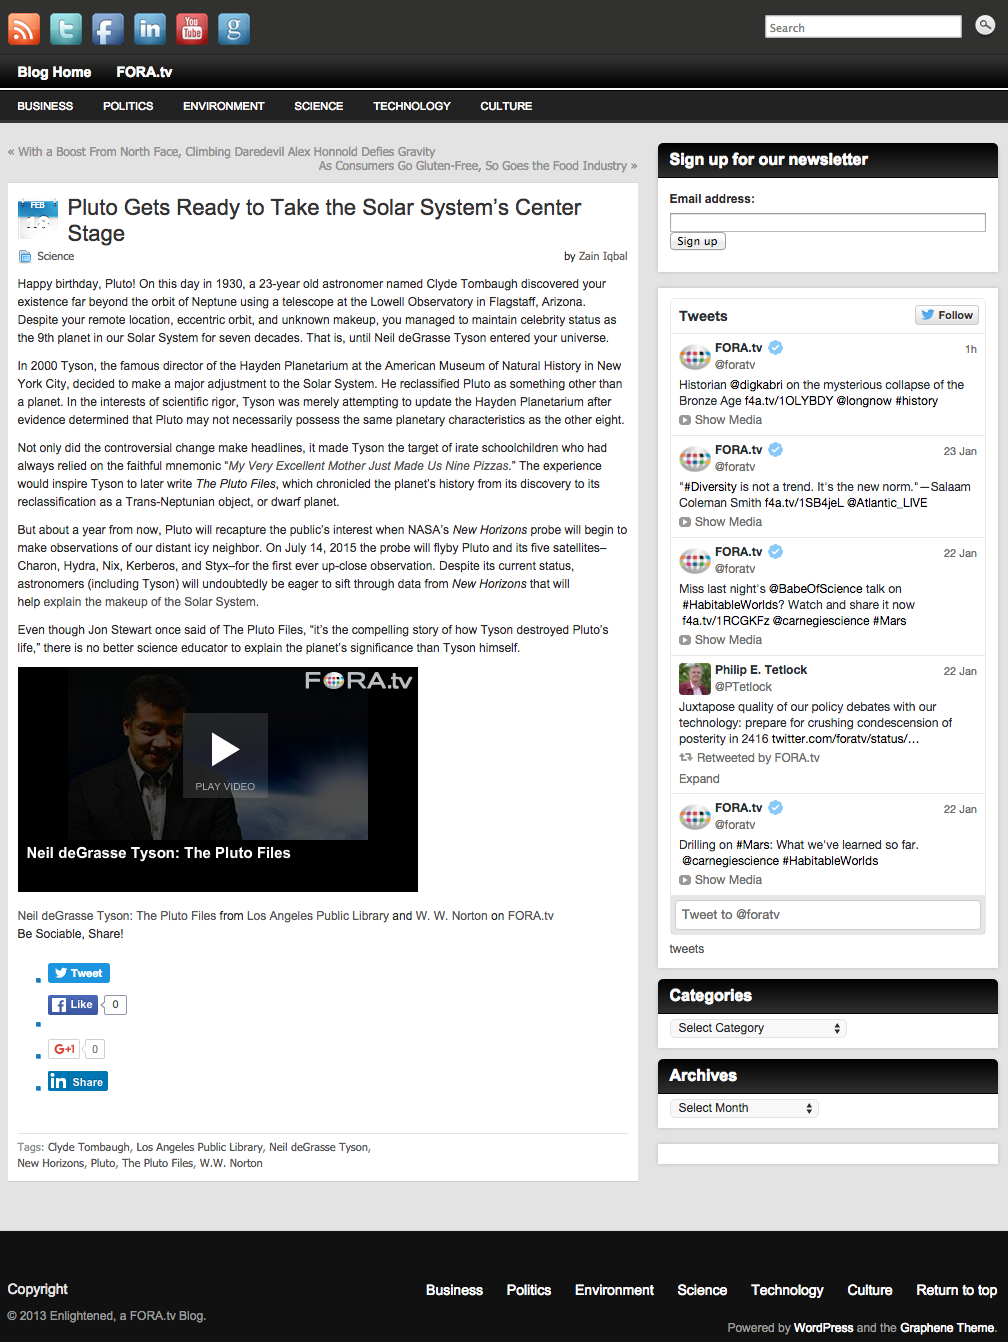 screencapture-enarchive-fora-tv-2014-02-pluto-gets-ready-to-take-the-solar-systems-center-stage.png